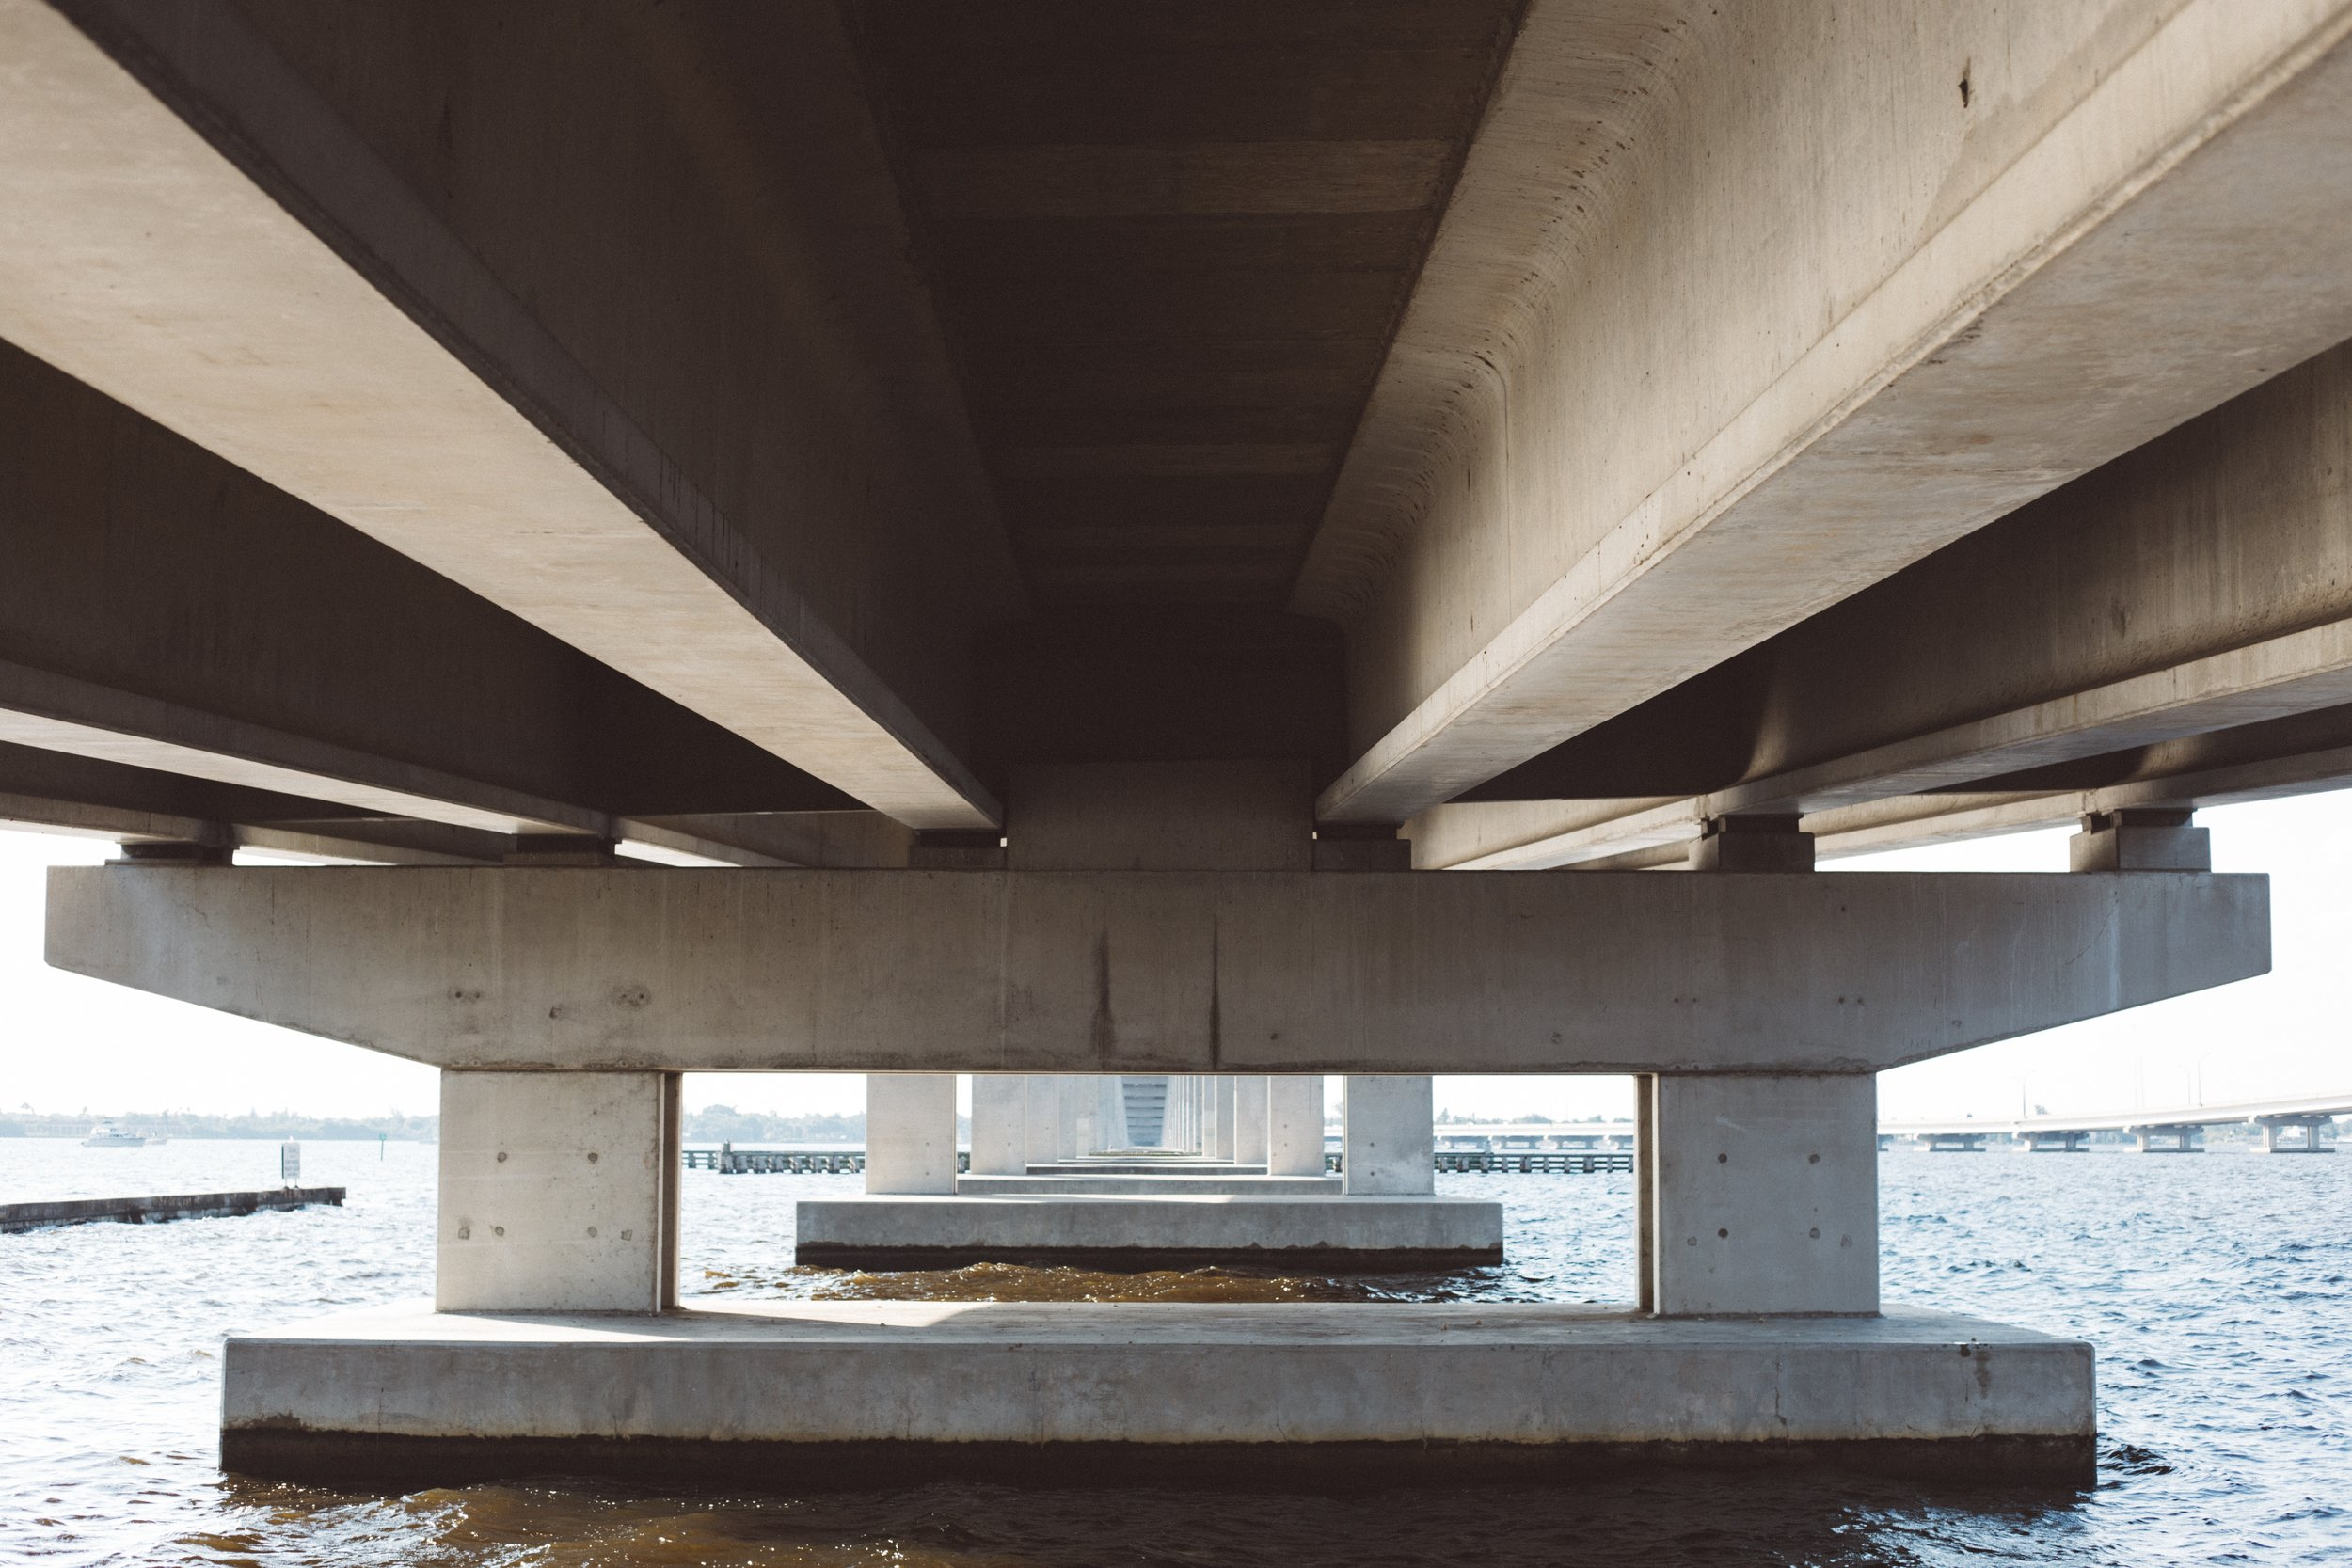 architecture-bridge-concrete-103595.jpg